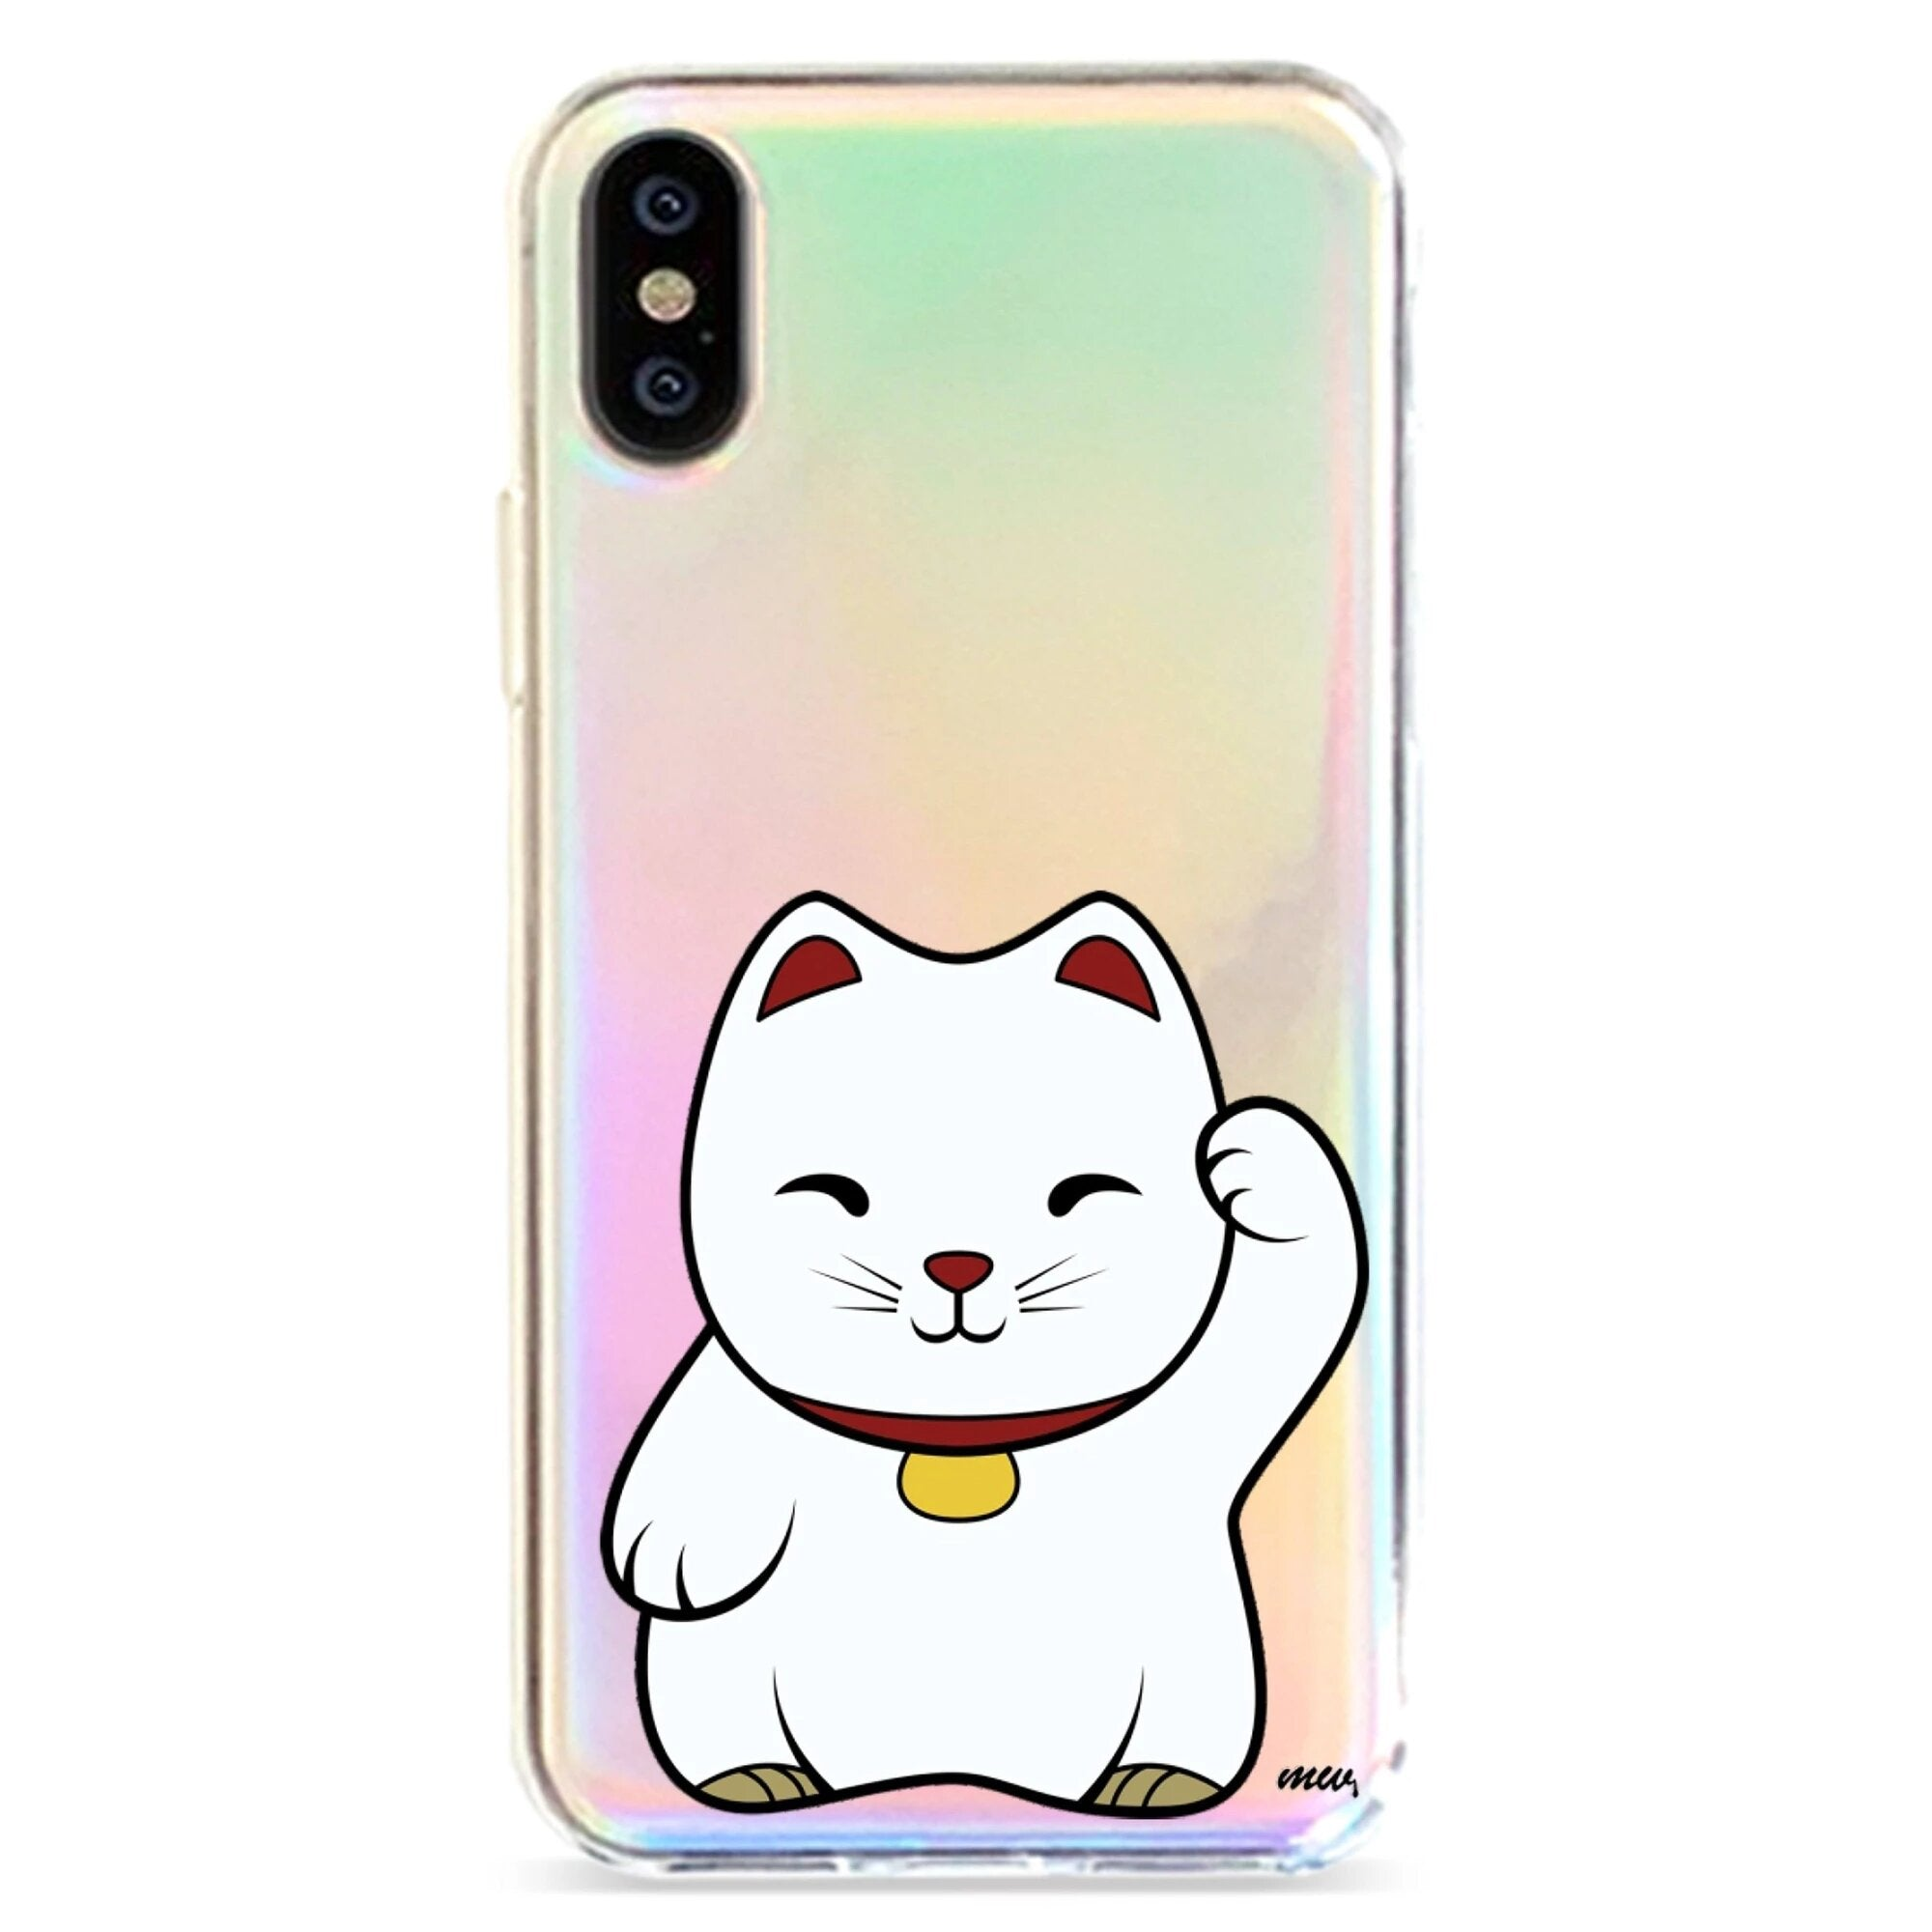 LUCKY CAT MANEKI NEKO - HOLOGRAPHIC IPHONE CASE